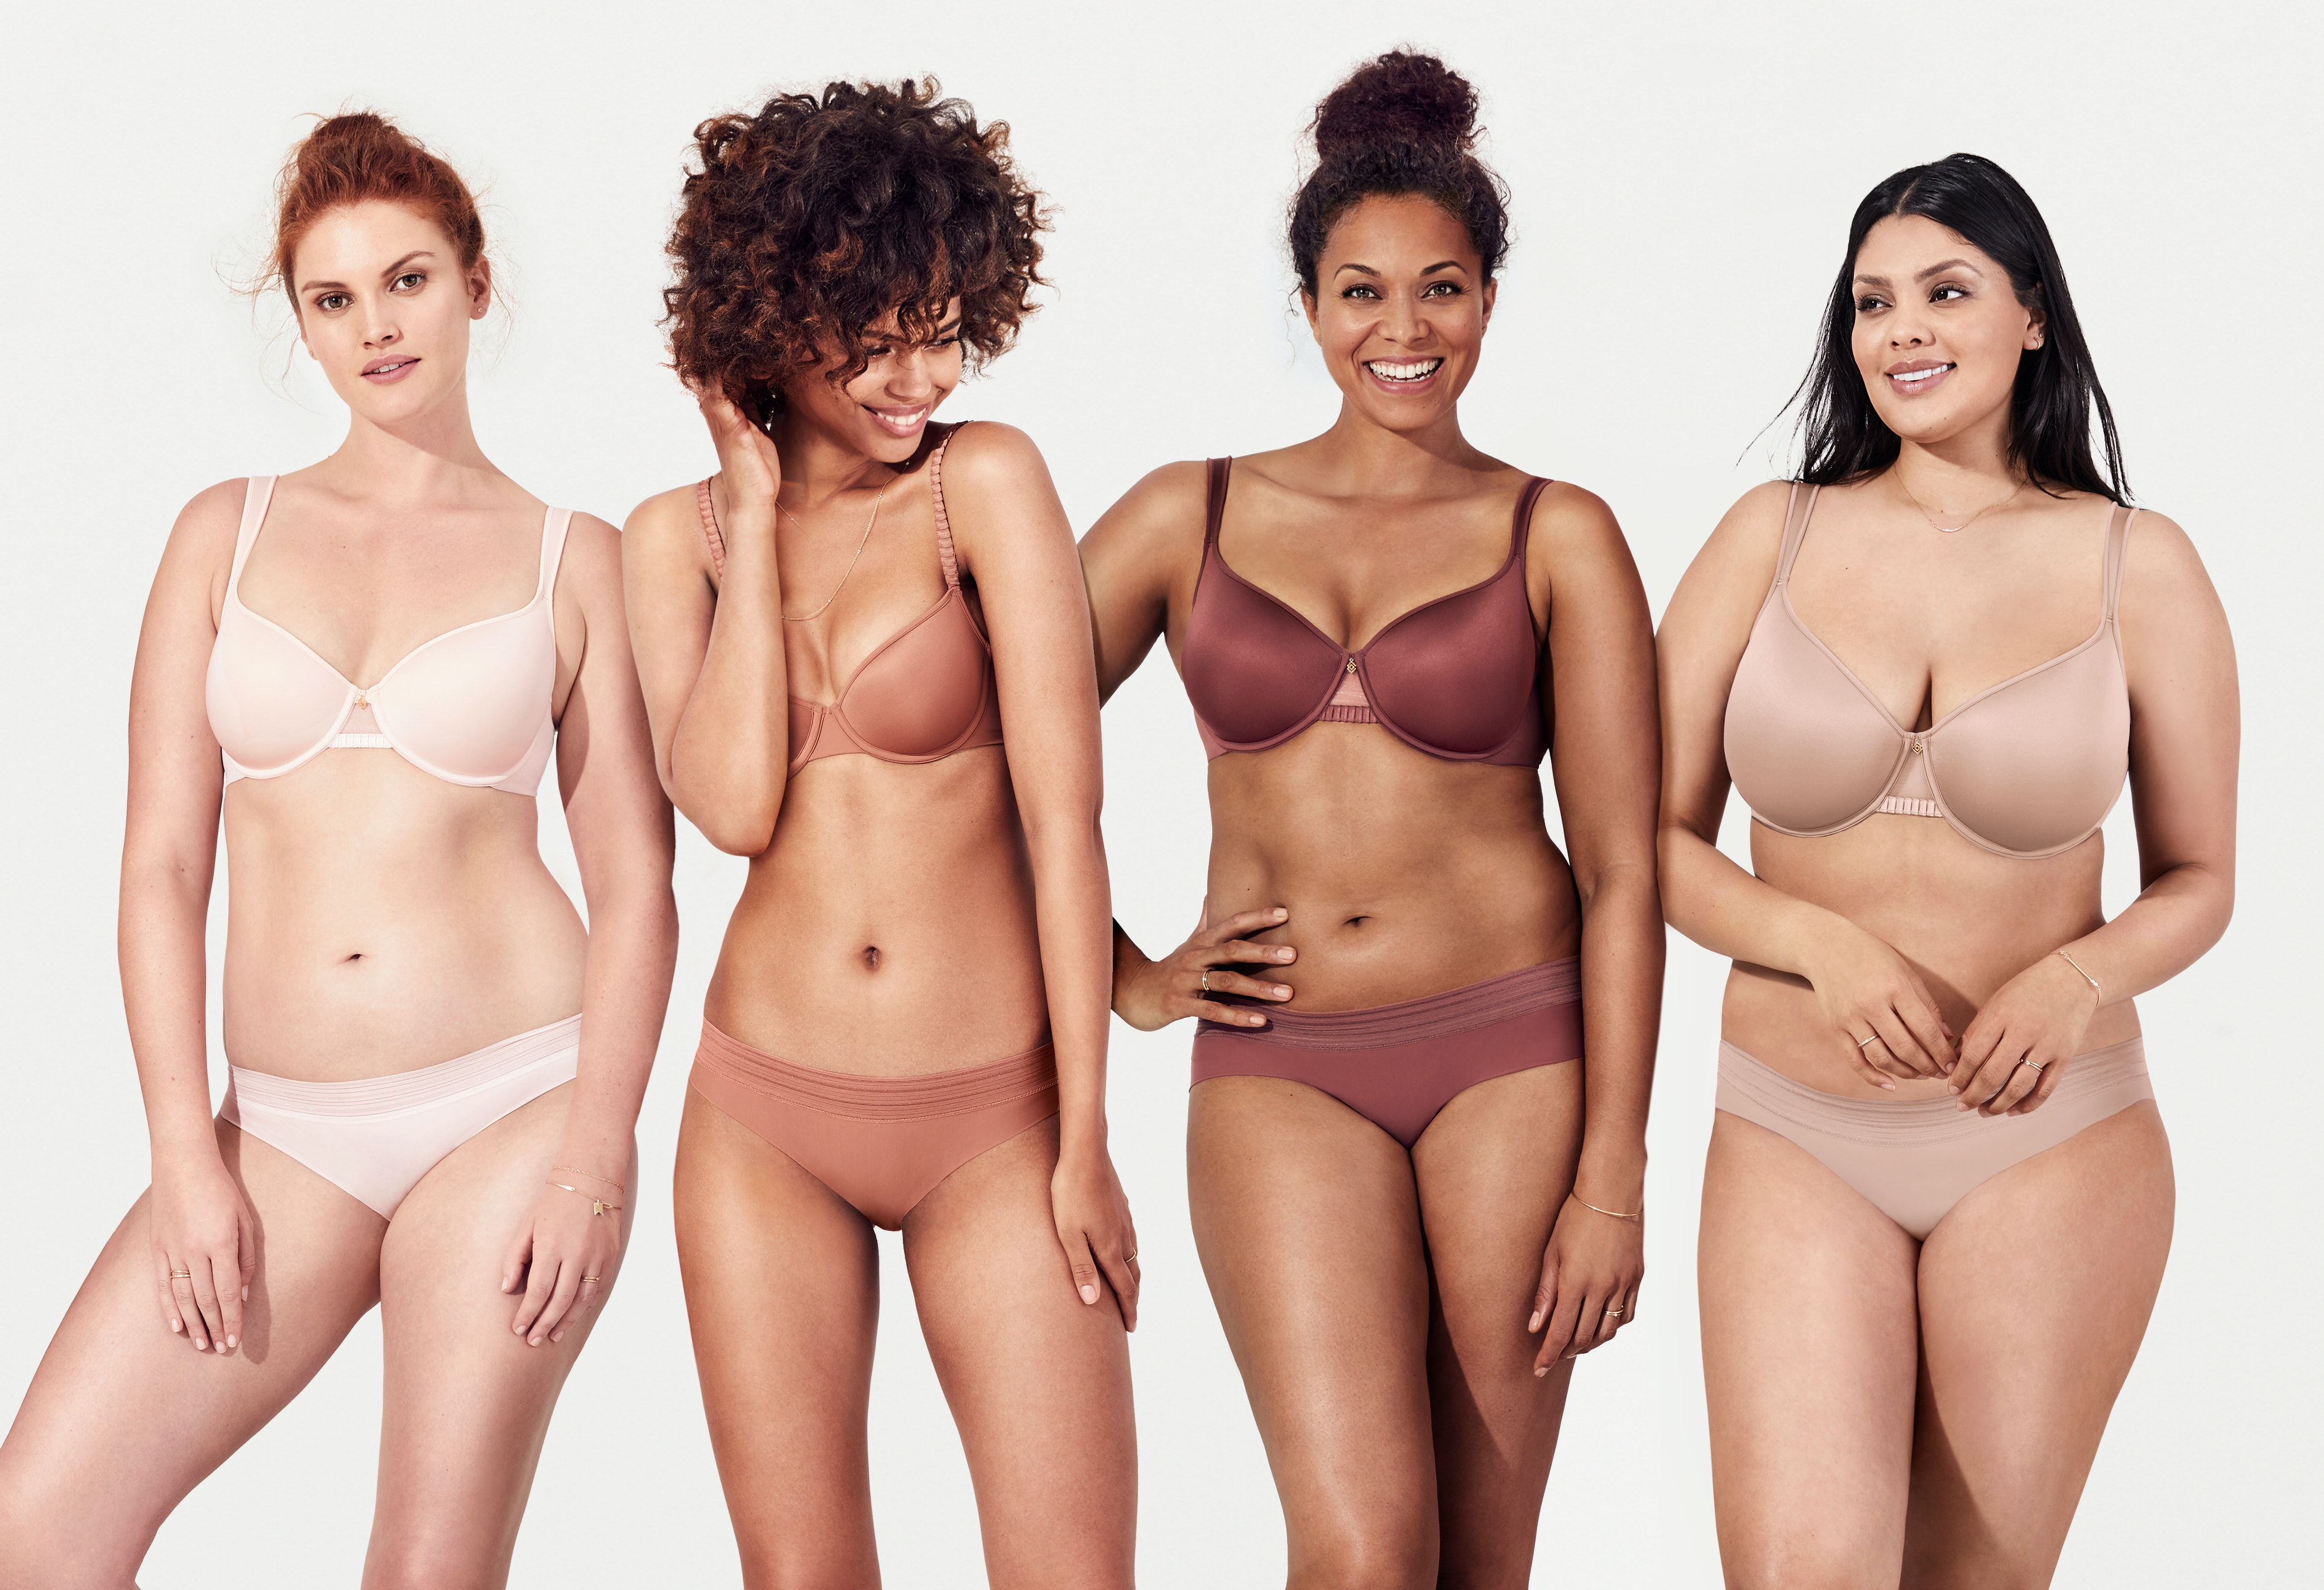 Sized girls bra A nude sorry, that interrupt